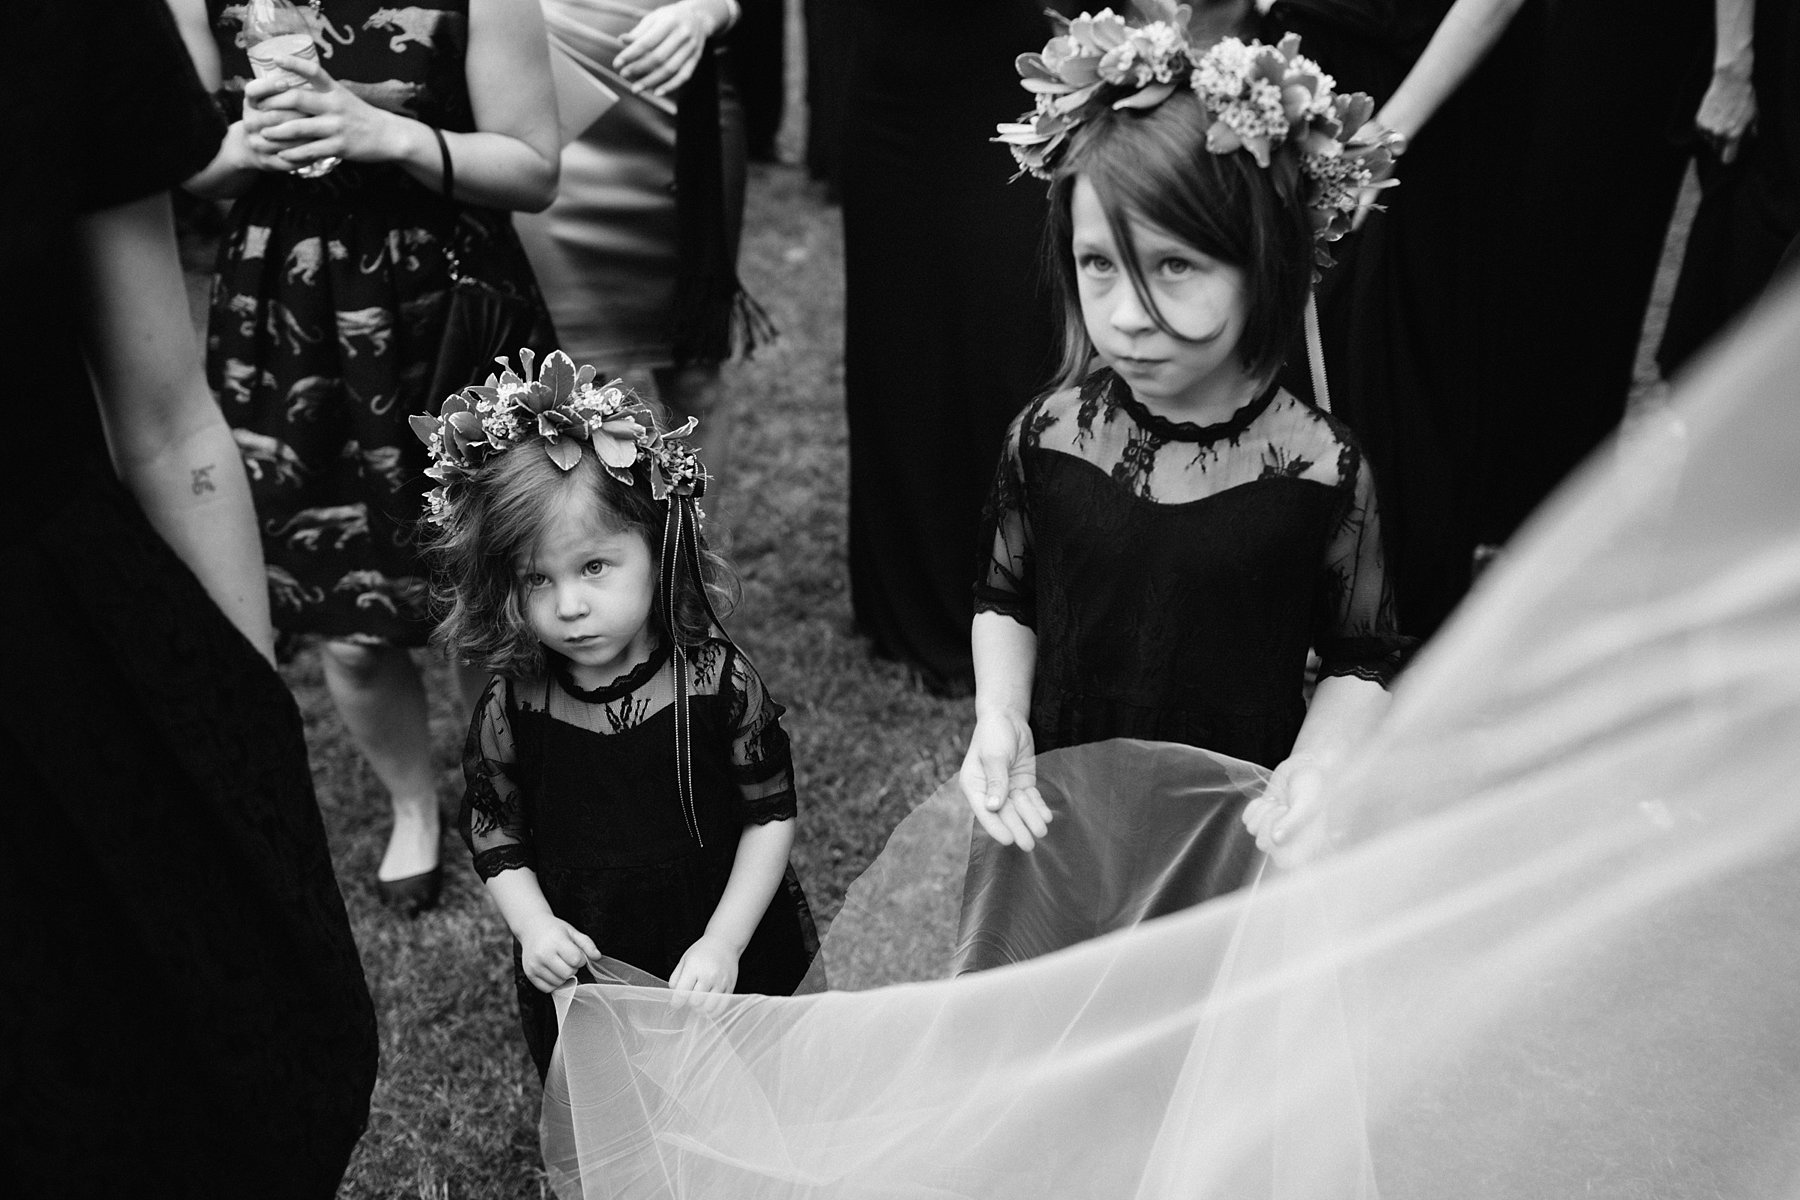 Flower girls at a wedding by Georgia photographer Catalina Jean